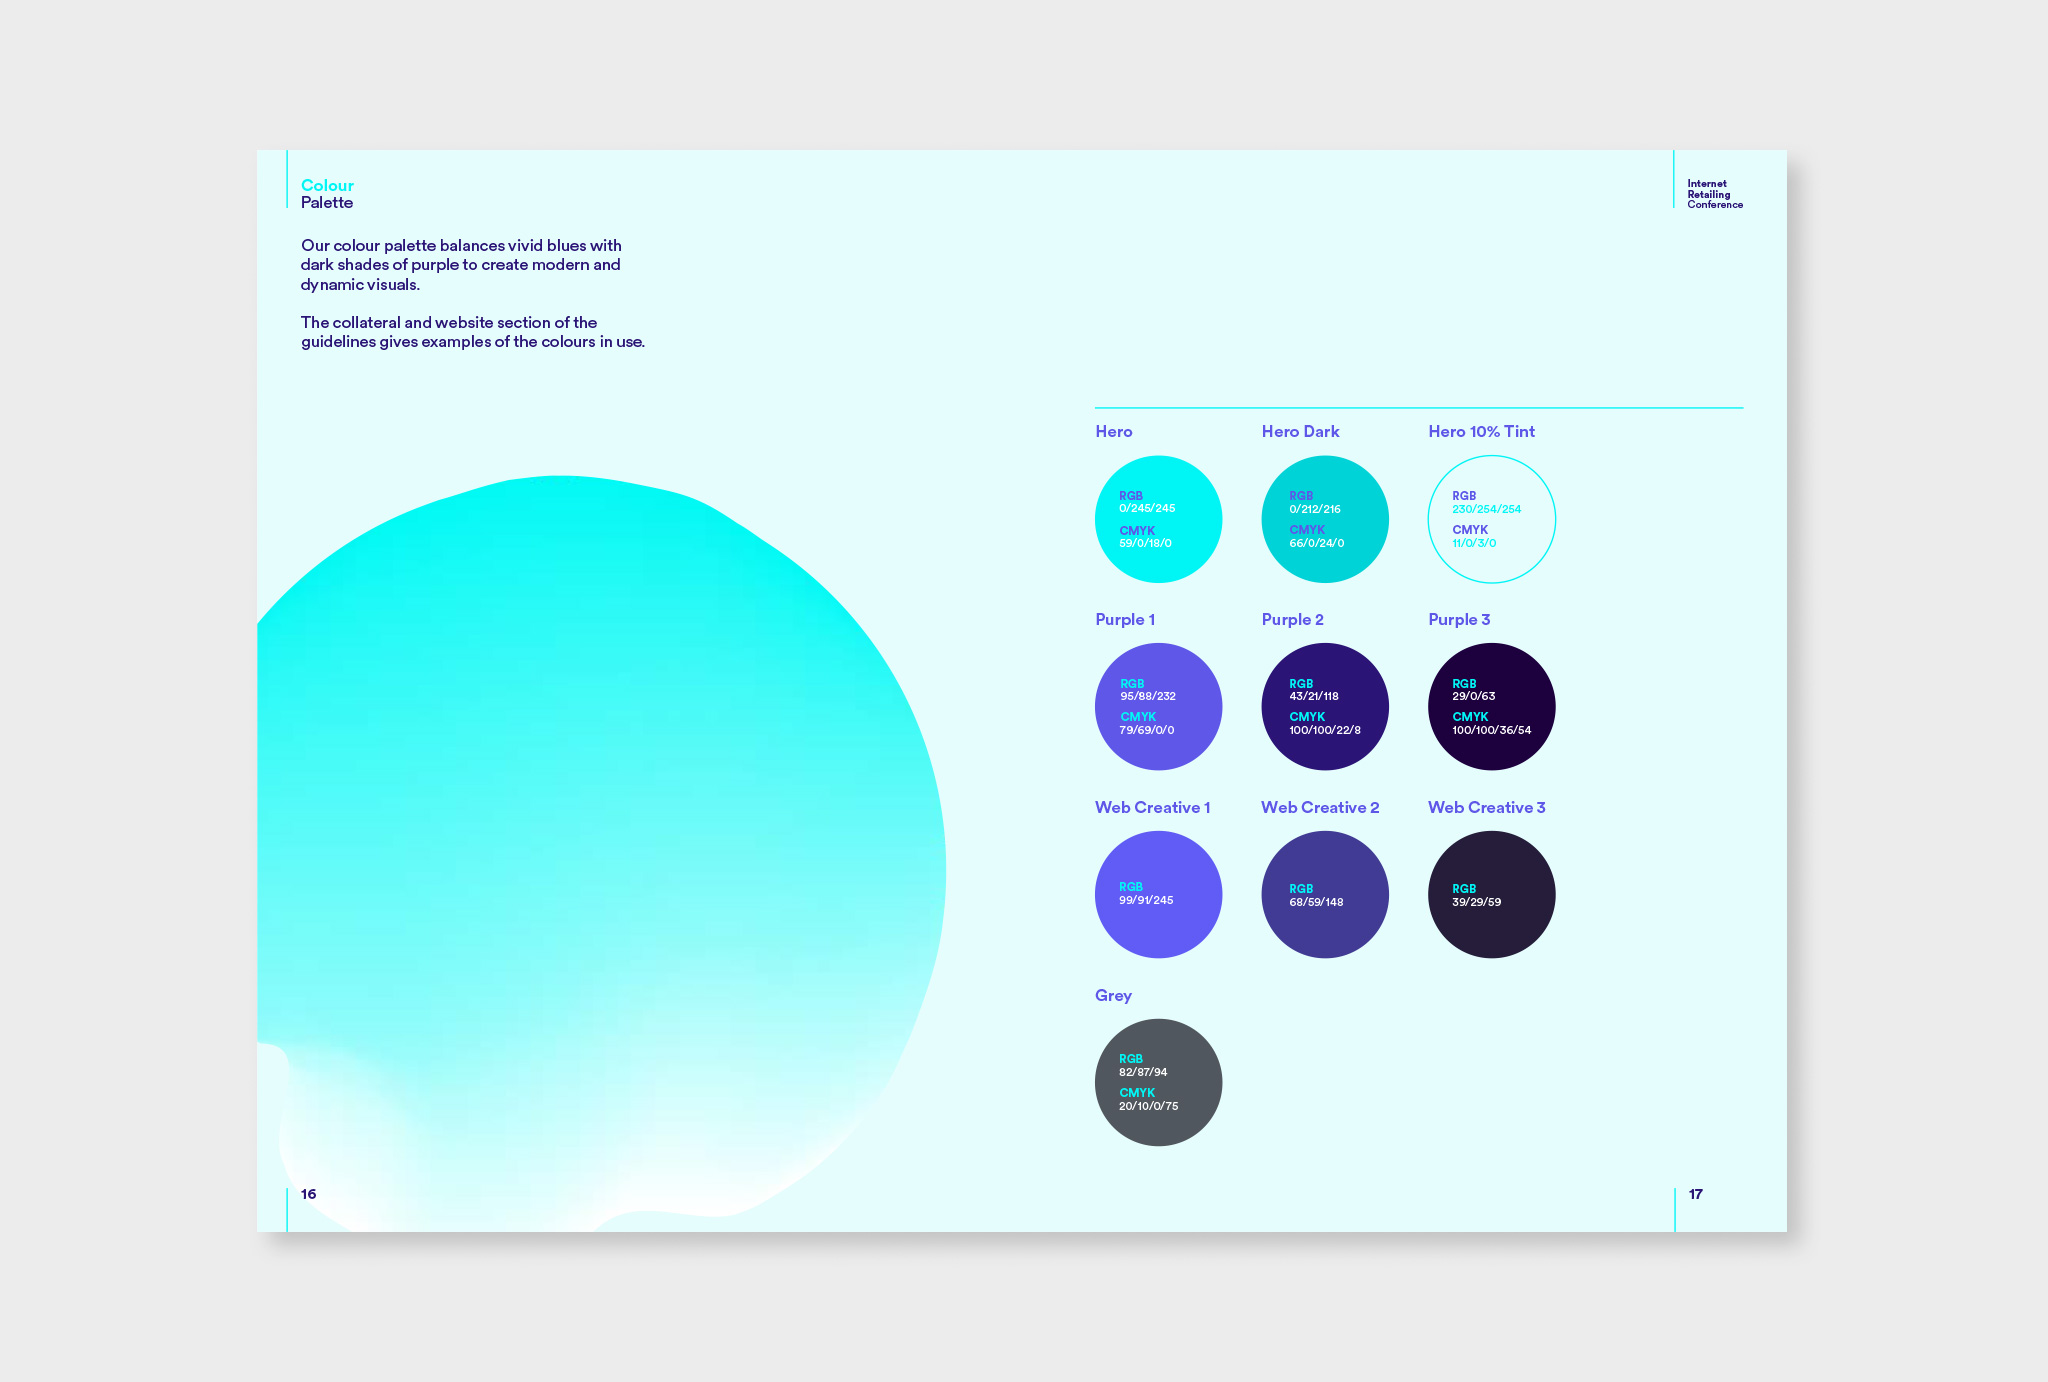 colour palette from light turquoise to dark blue